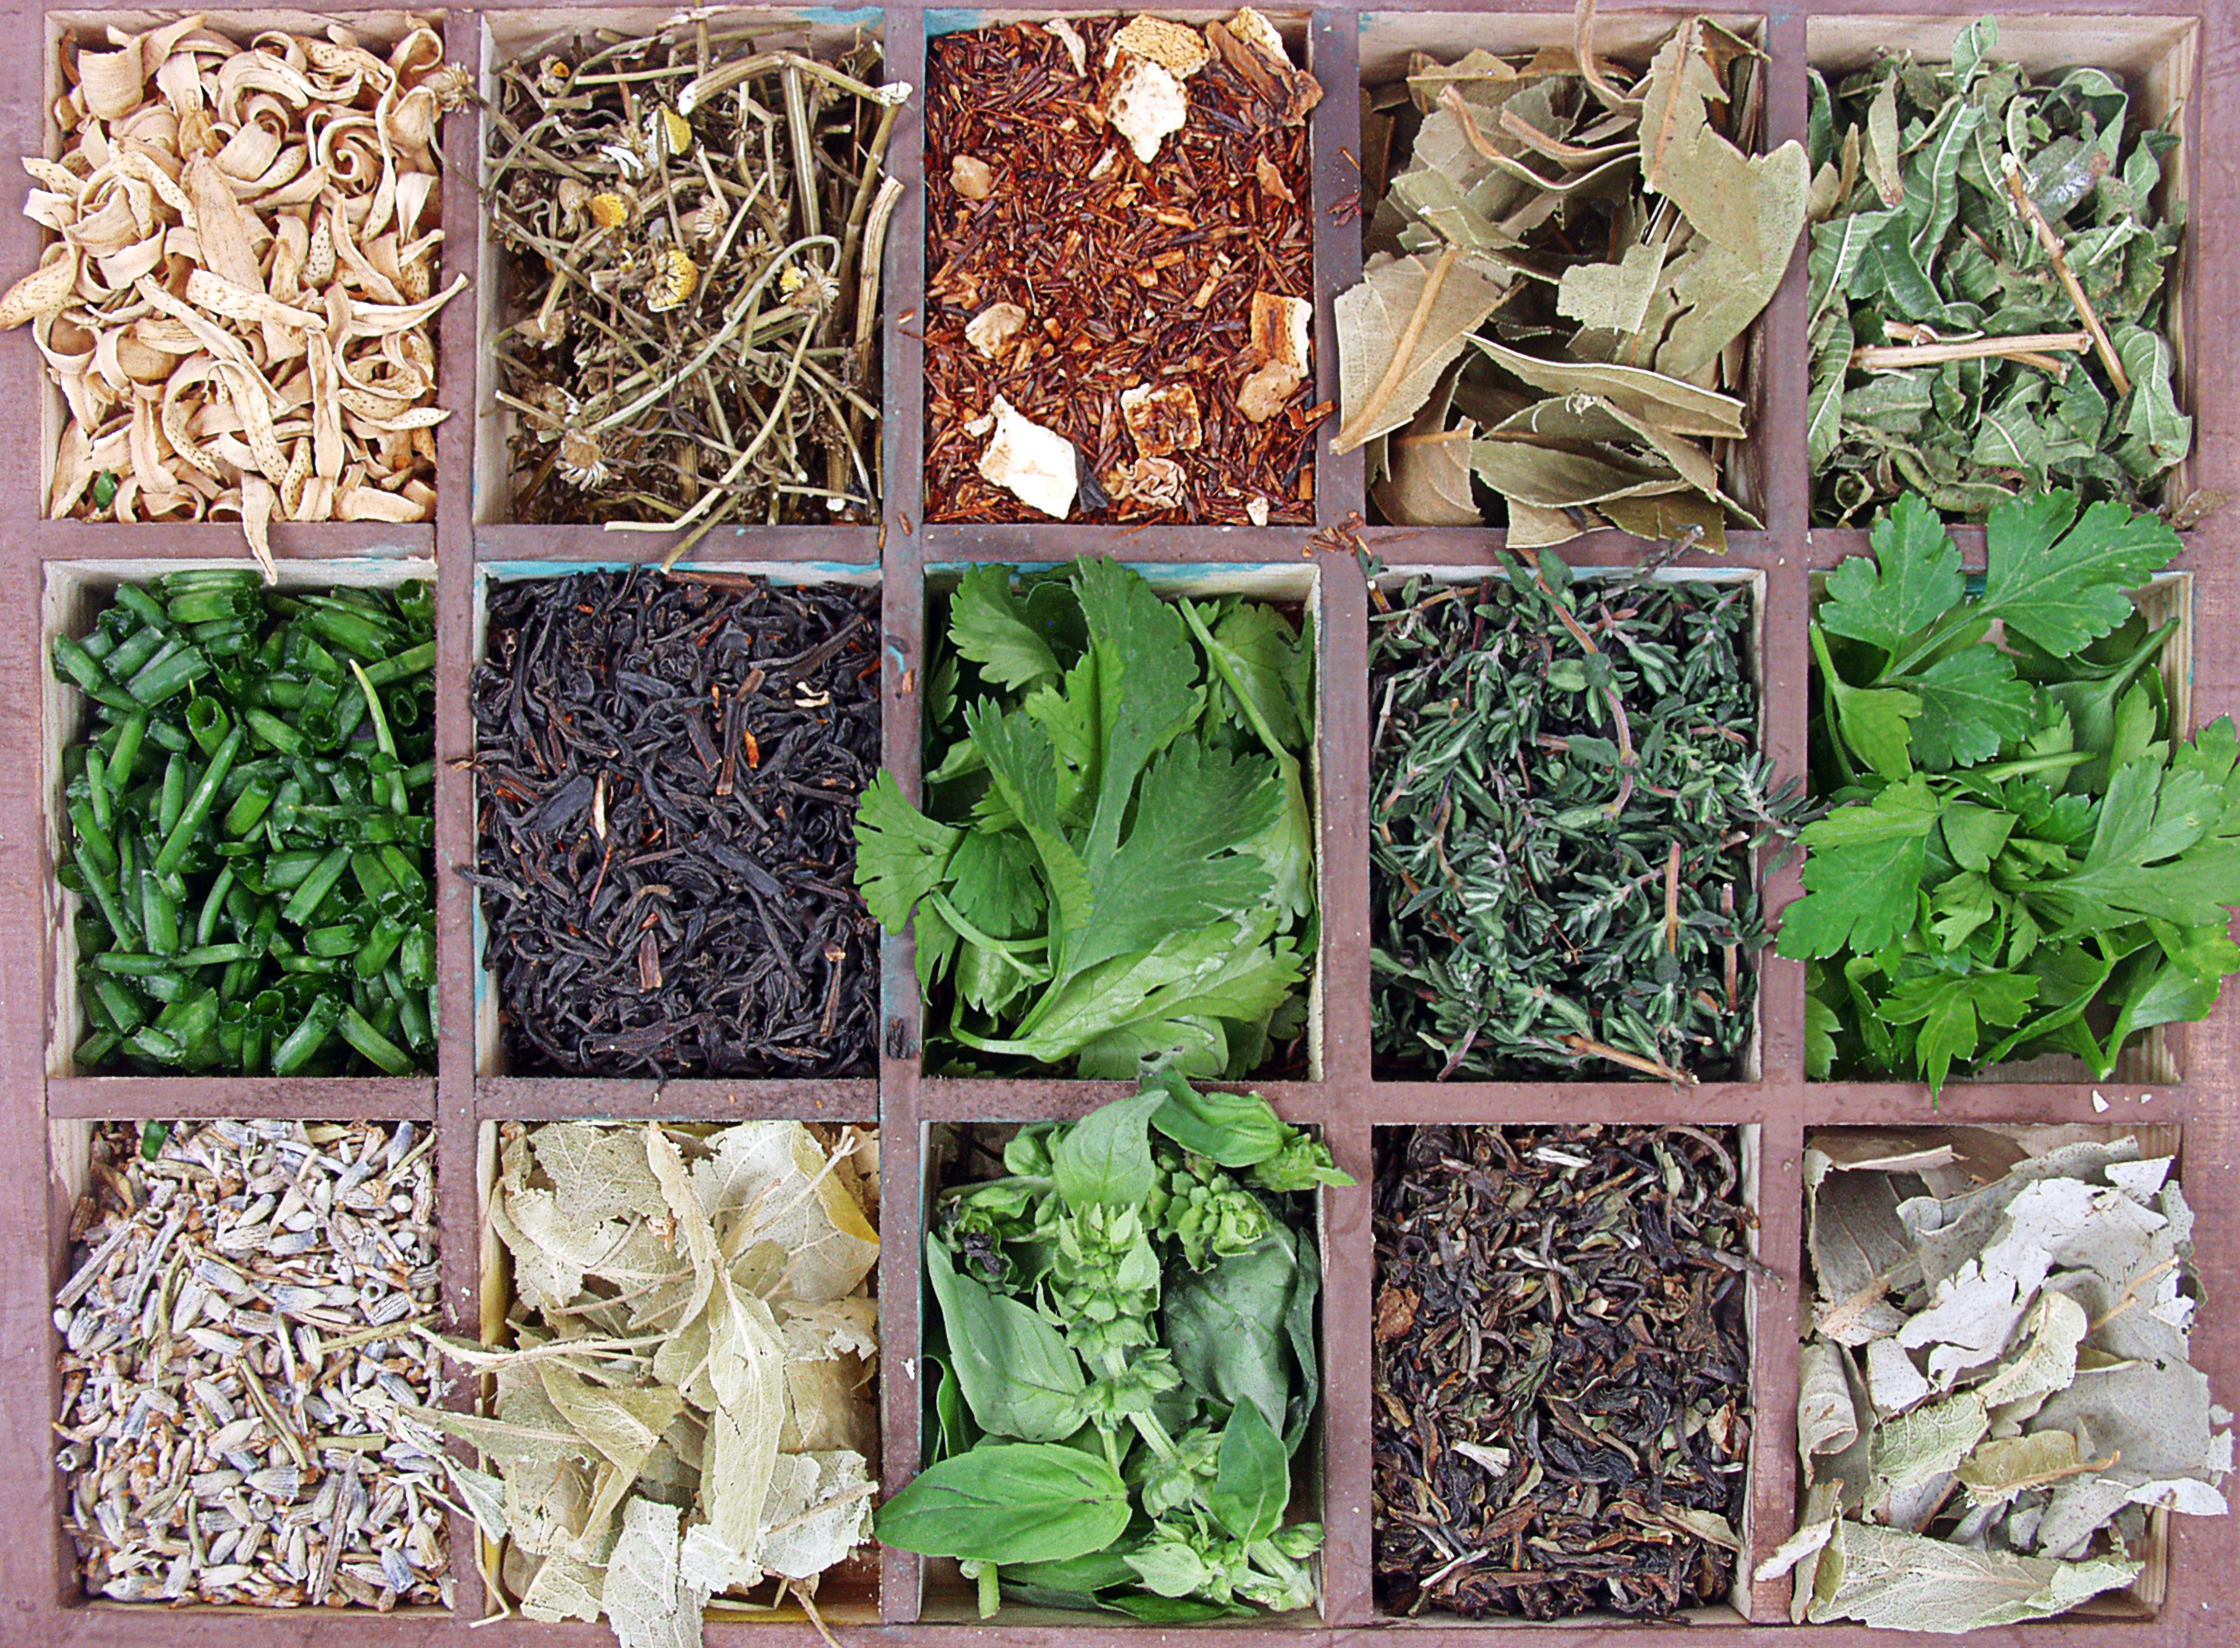 assortment of herbs and spices